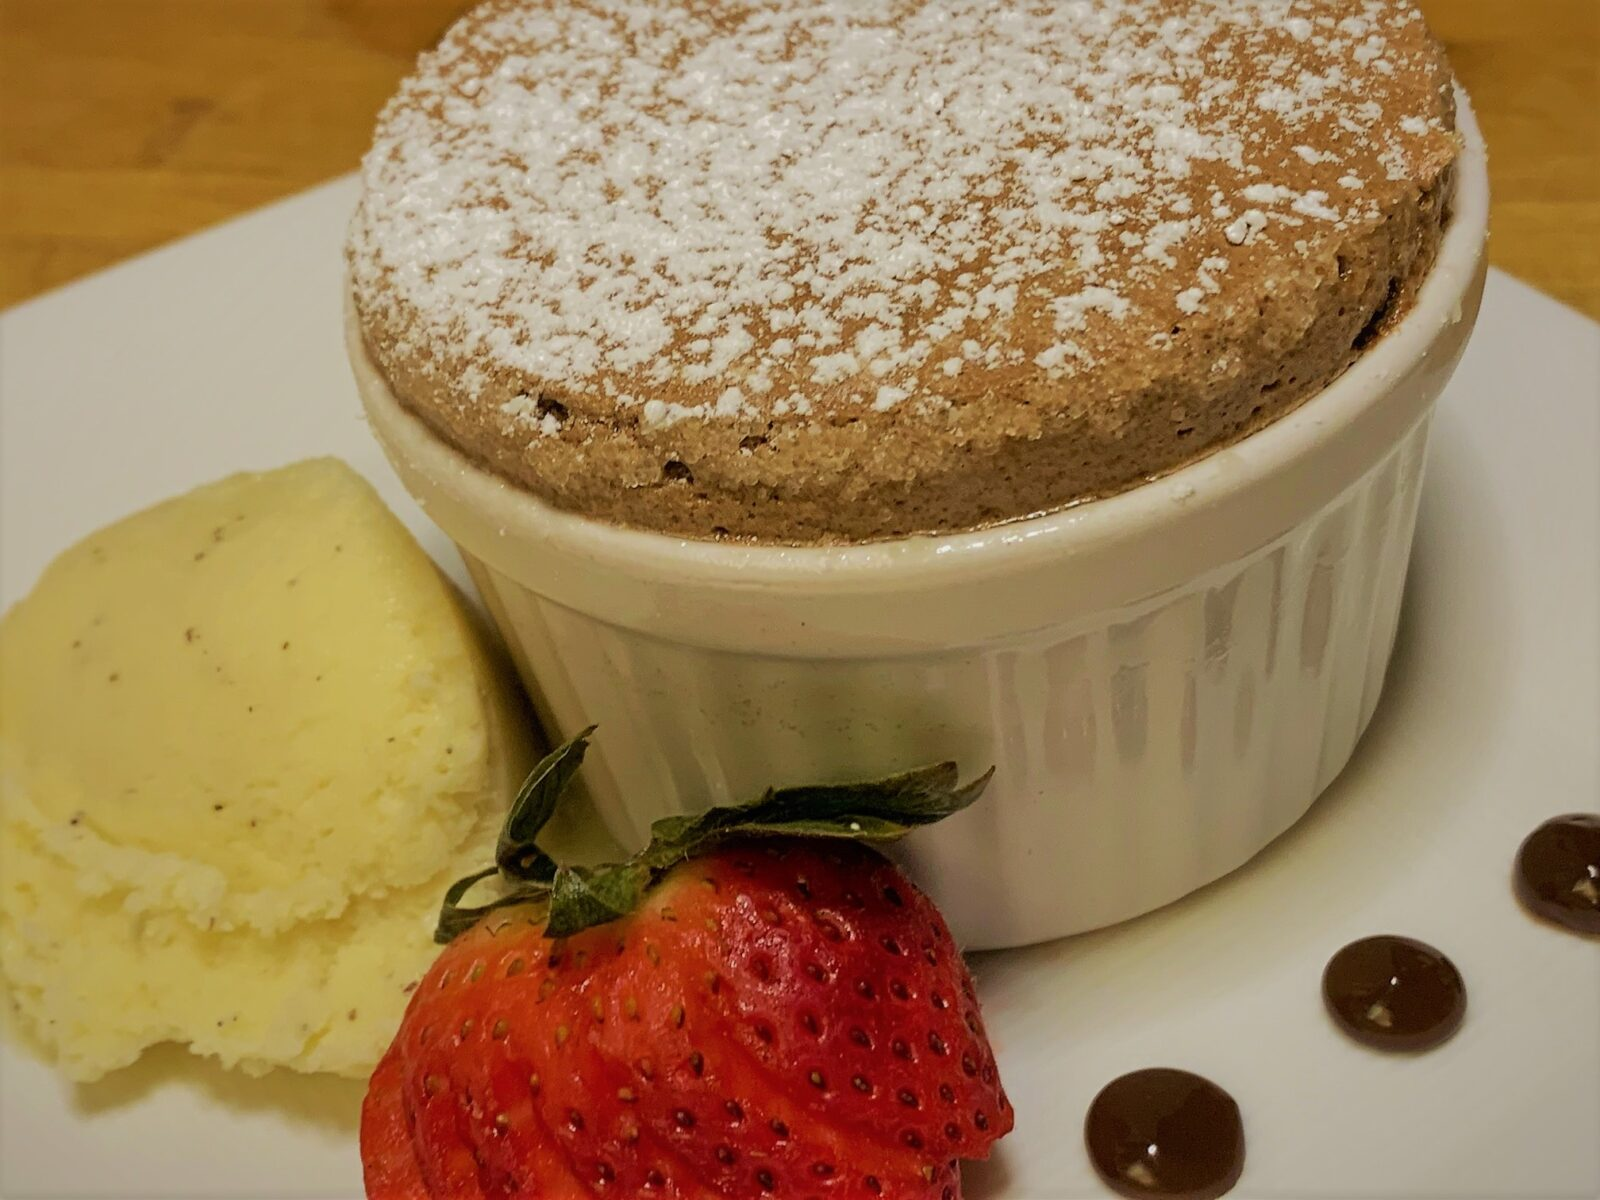 Our plated Chocolate Souffle from Palo